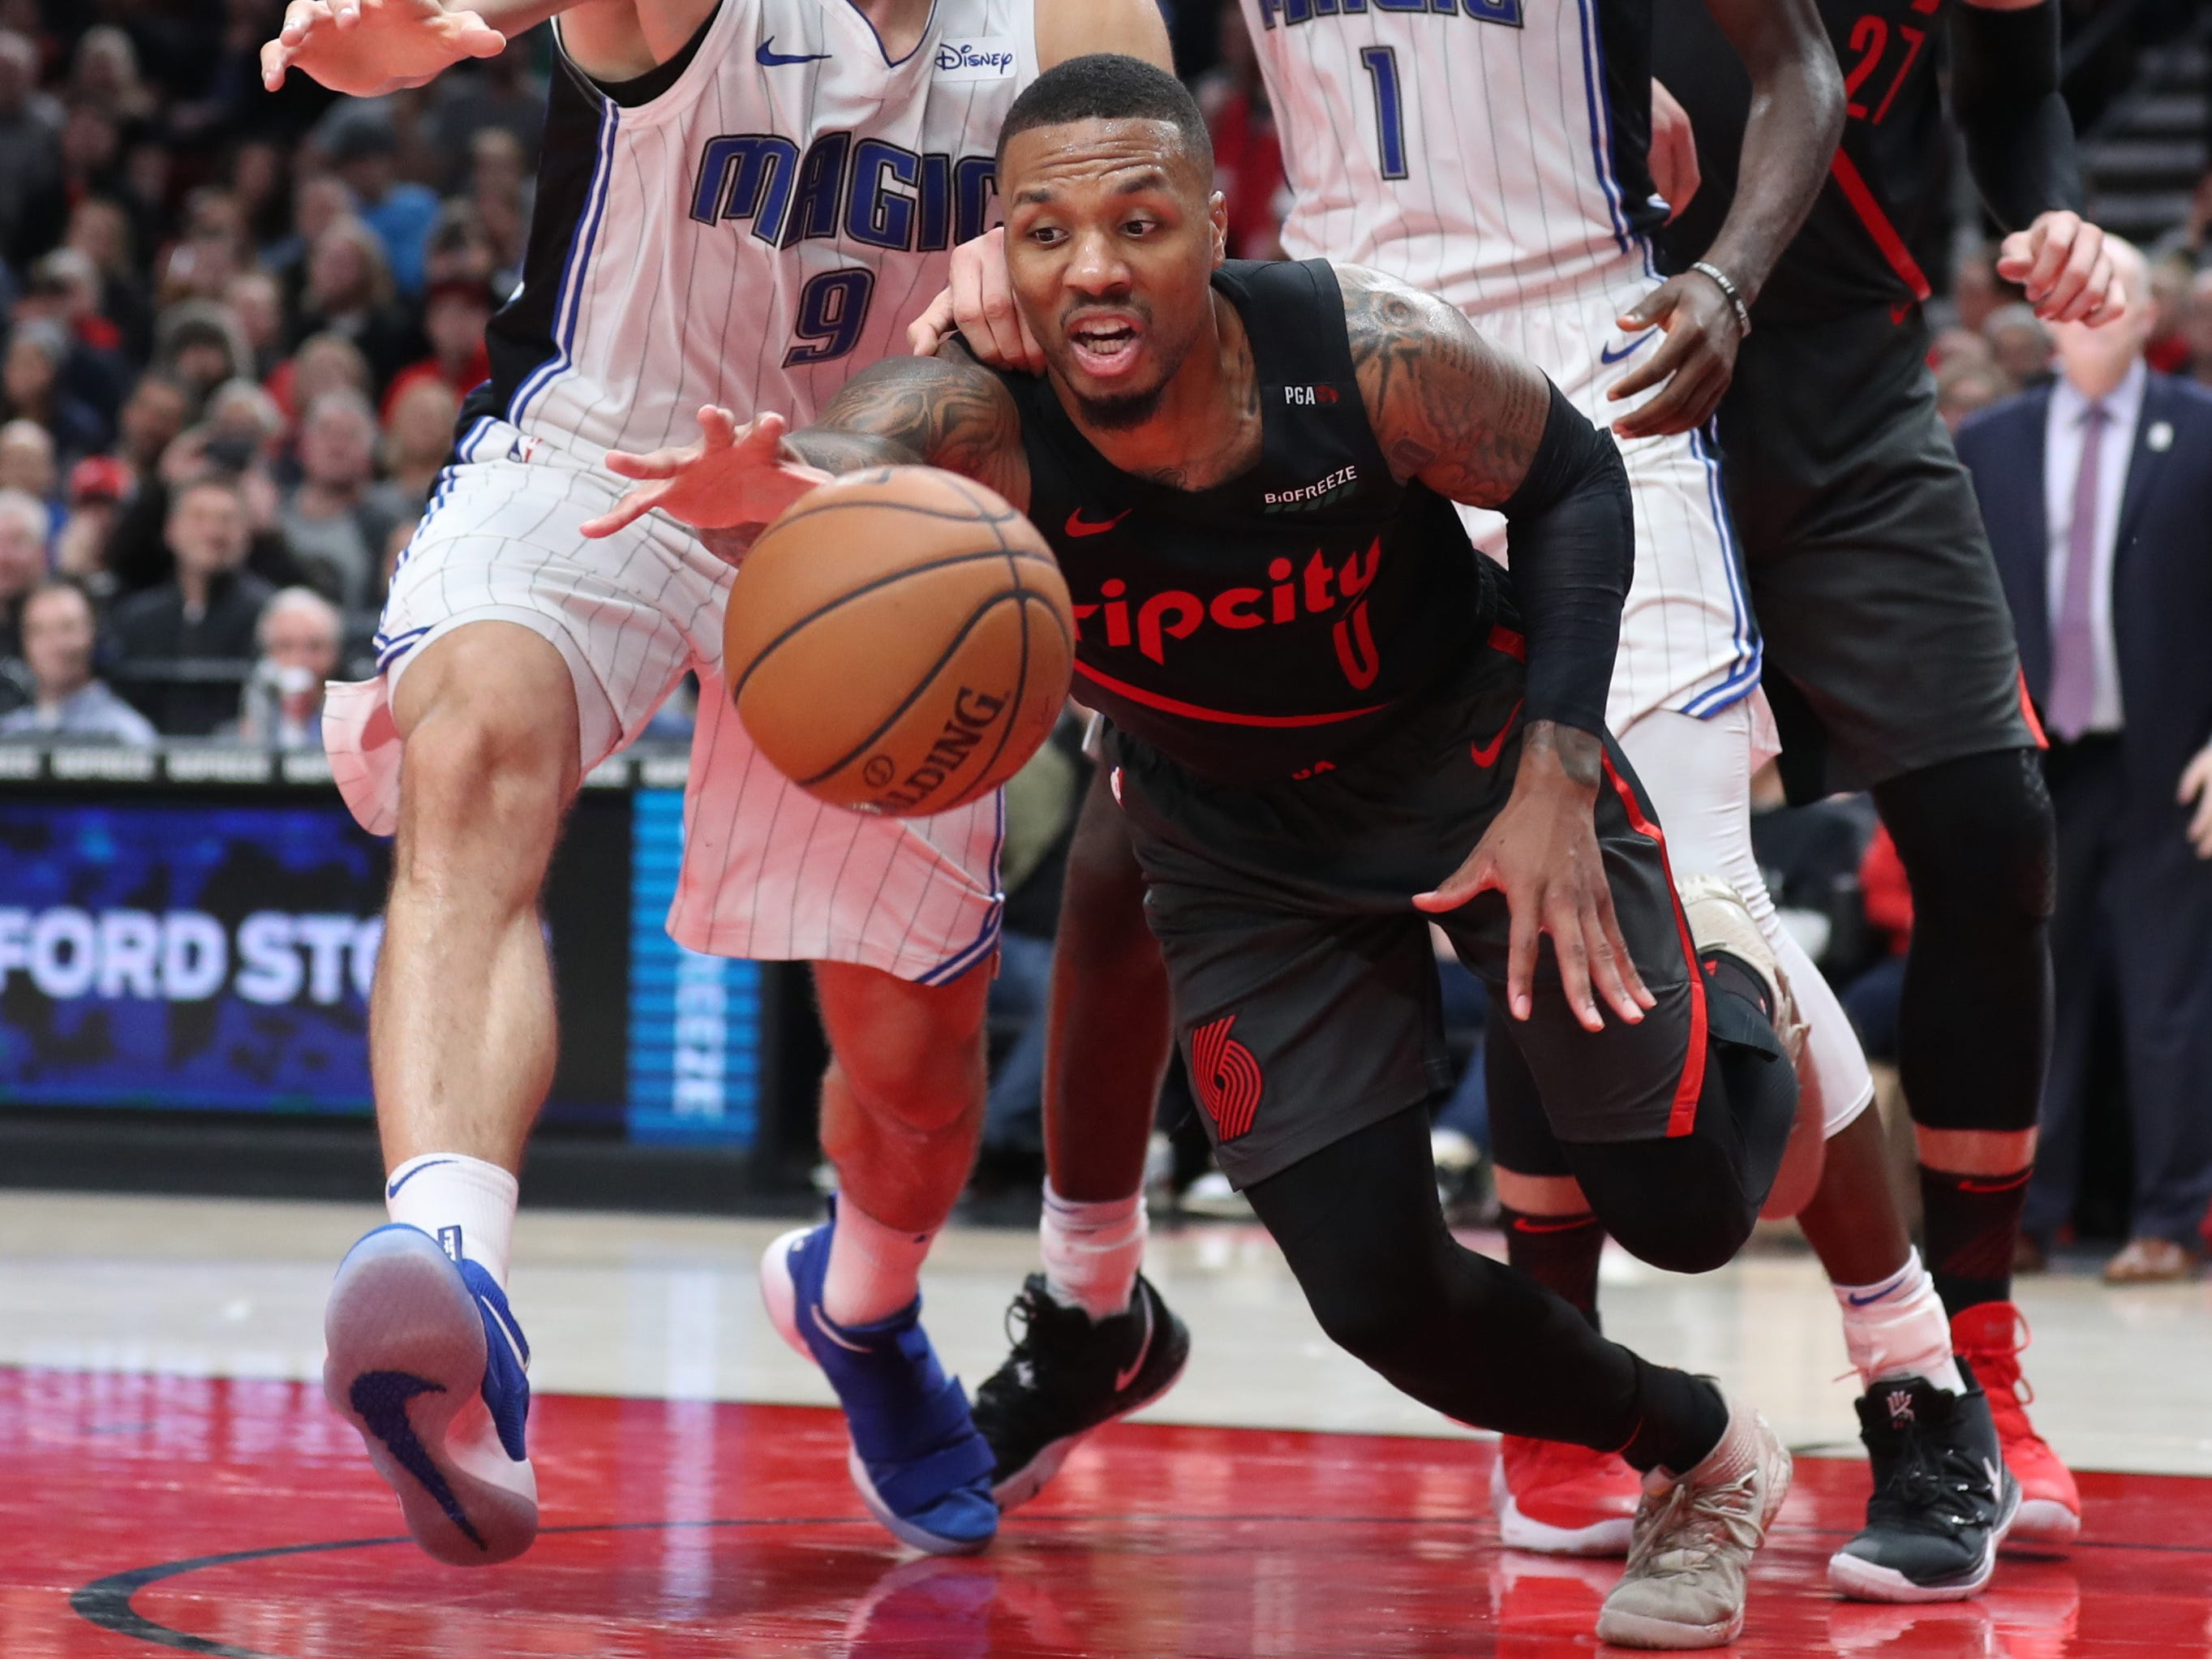 Nov. 28: Trail Blazers guard Damian Lillard dives for a loose ball during the first half against the Magic in Portland.